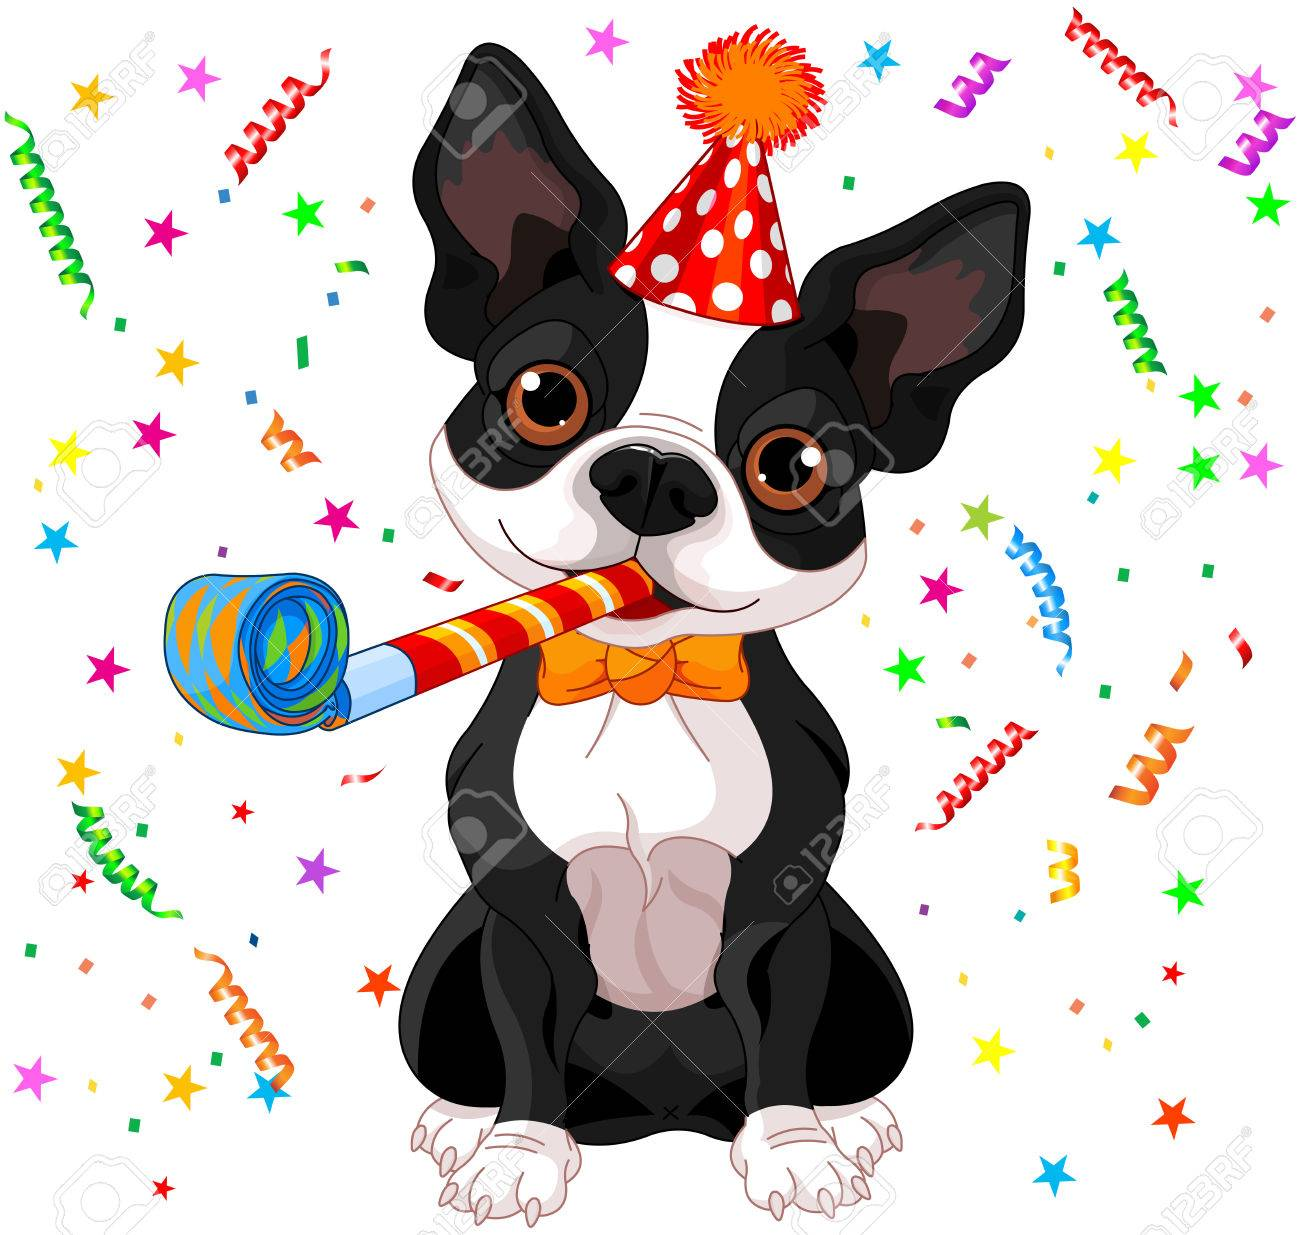 Dépigmentation: Génodermatose, dysplasie folliculaire - Page 7 35588778-illustration-of-cute-boston-terrier-celebrating